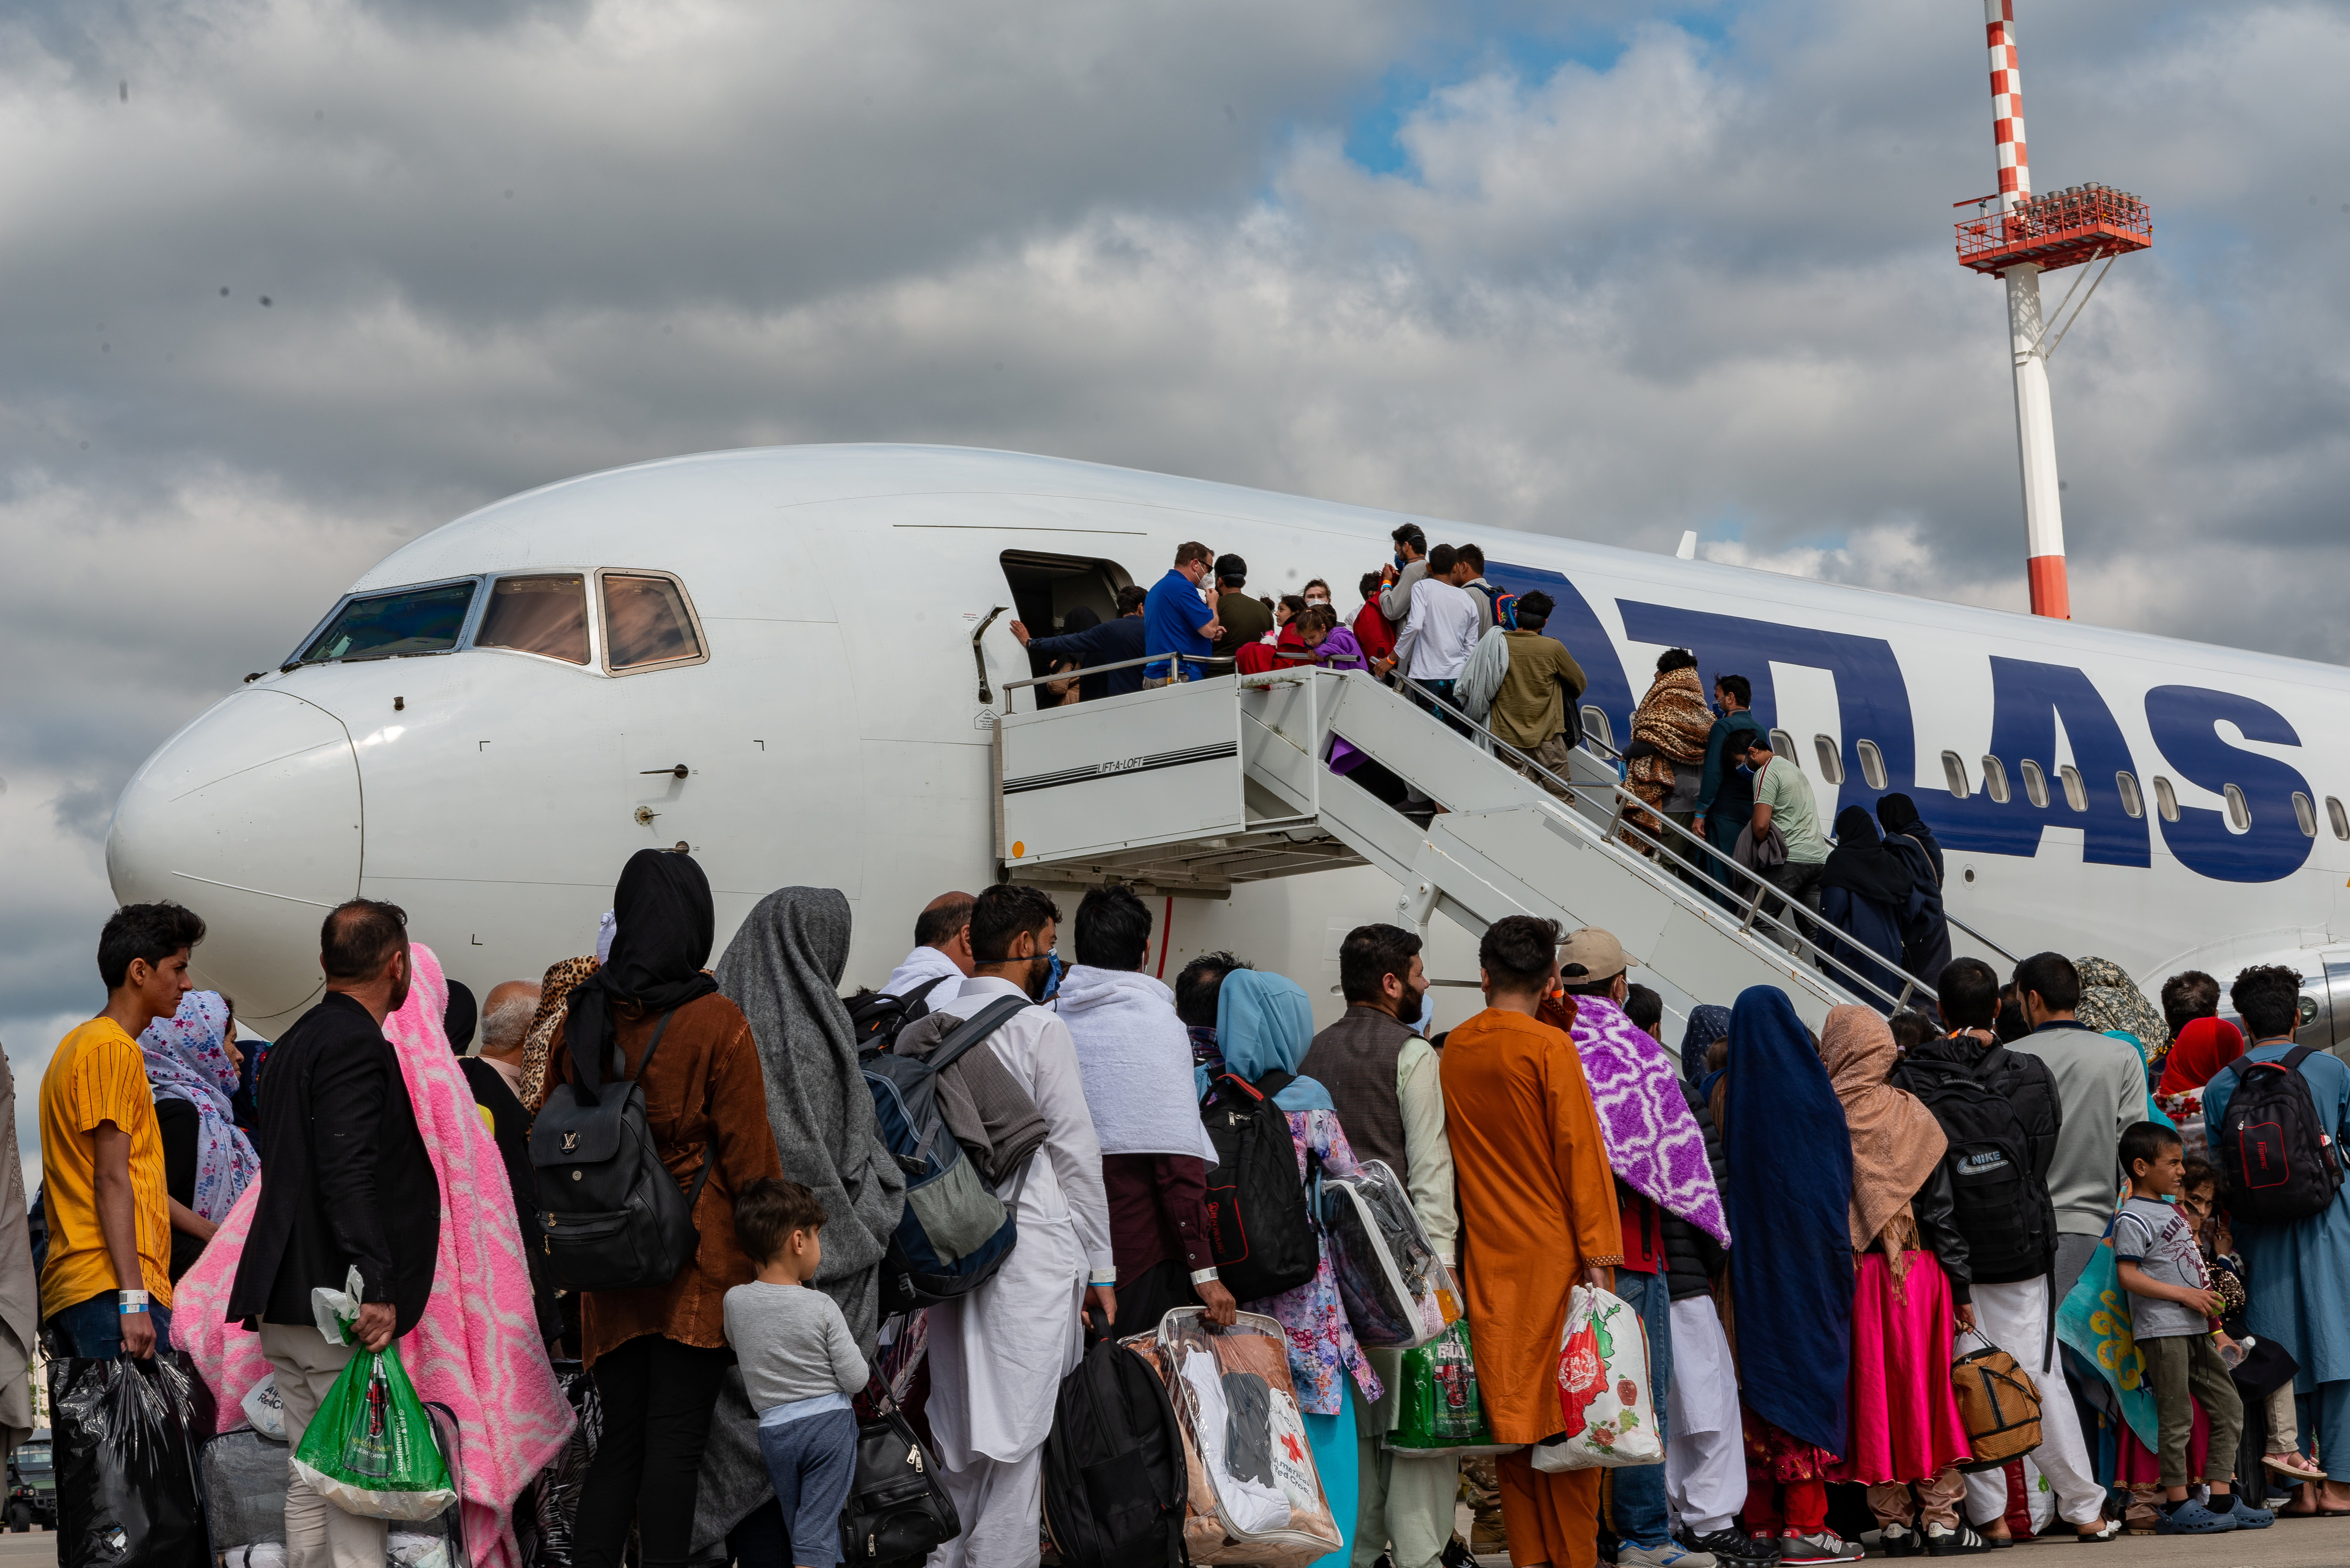 Evacuees from Afghanistan board an Atlas Air aircraft for a departure flight on their way to the United States as part of Operations Allies Refuge, at Ramstein Air Base, Germany, August 24, 2021.  U.S. Air Force/Airman Edgar Grimaldo/Handout via REUTERS